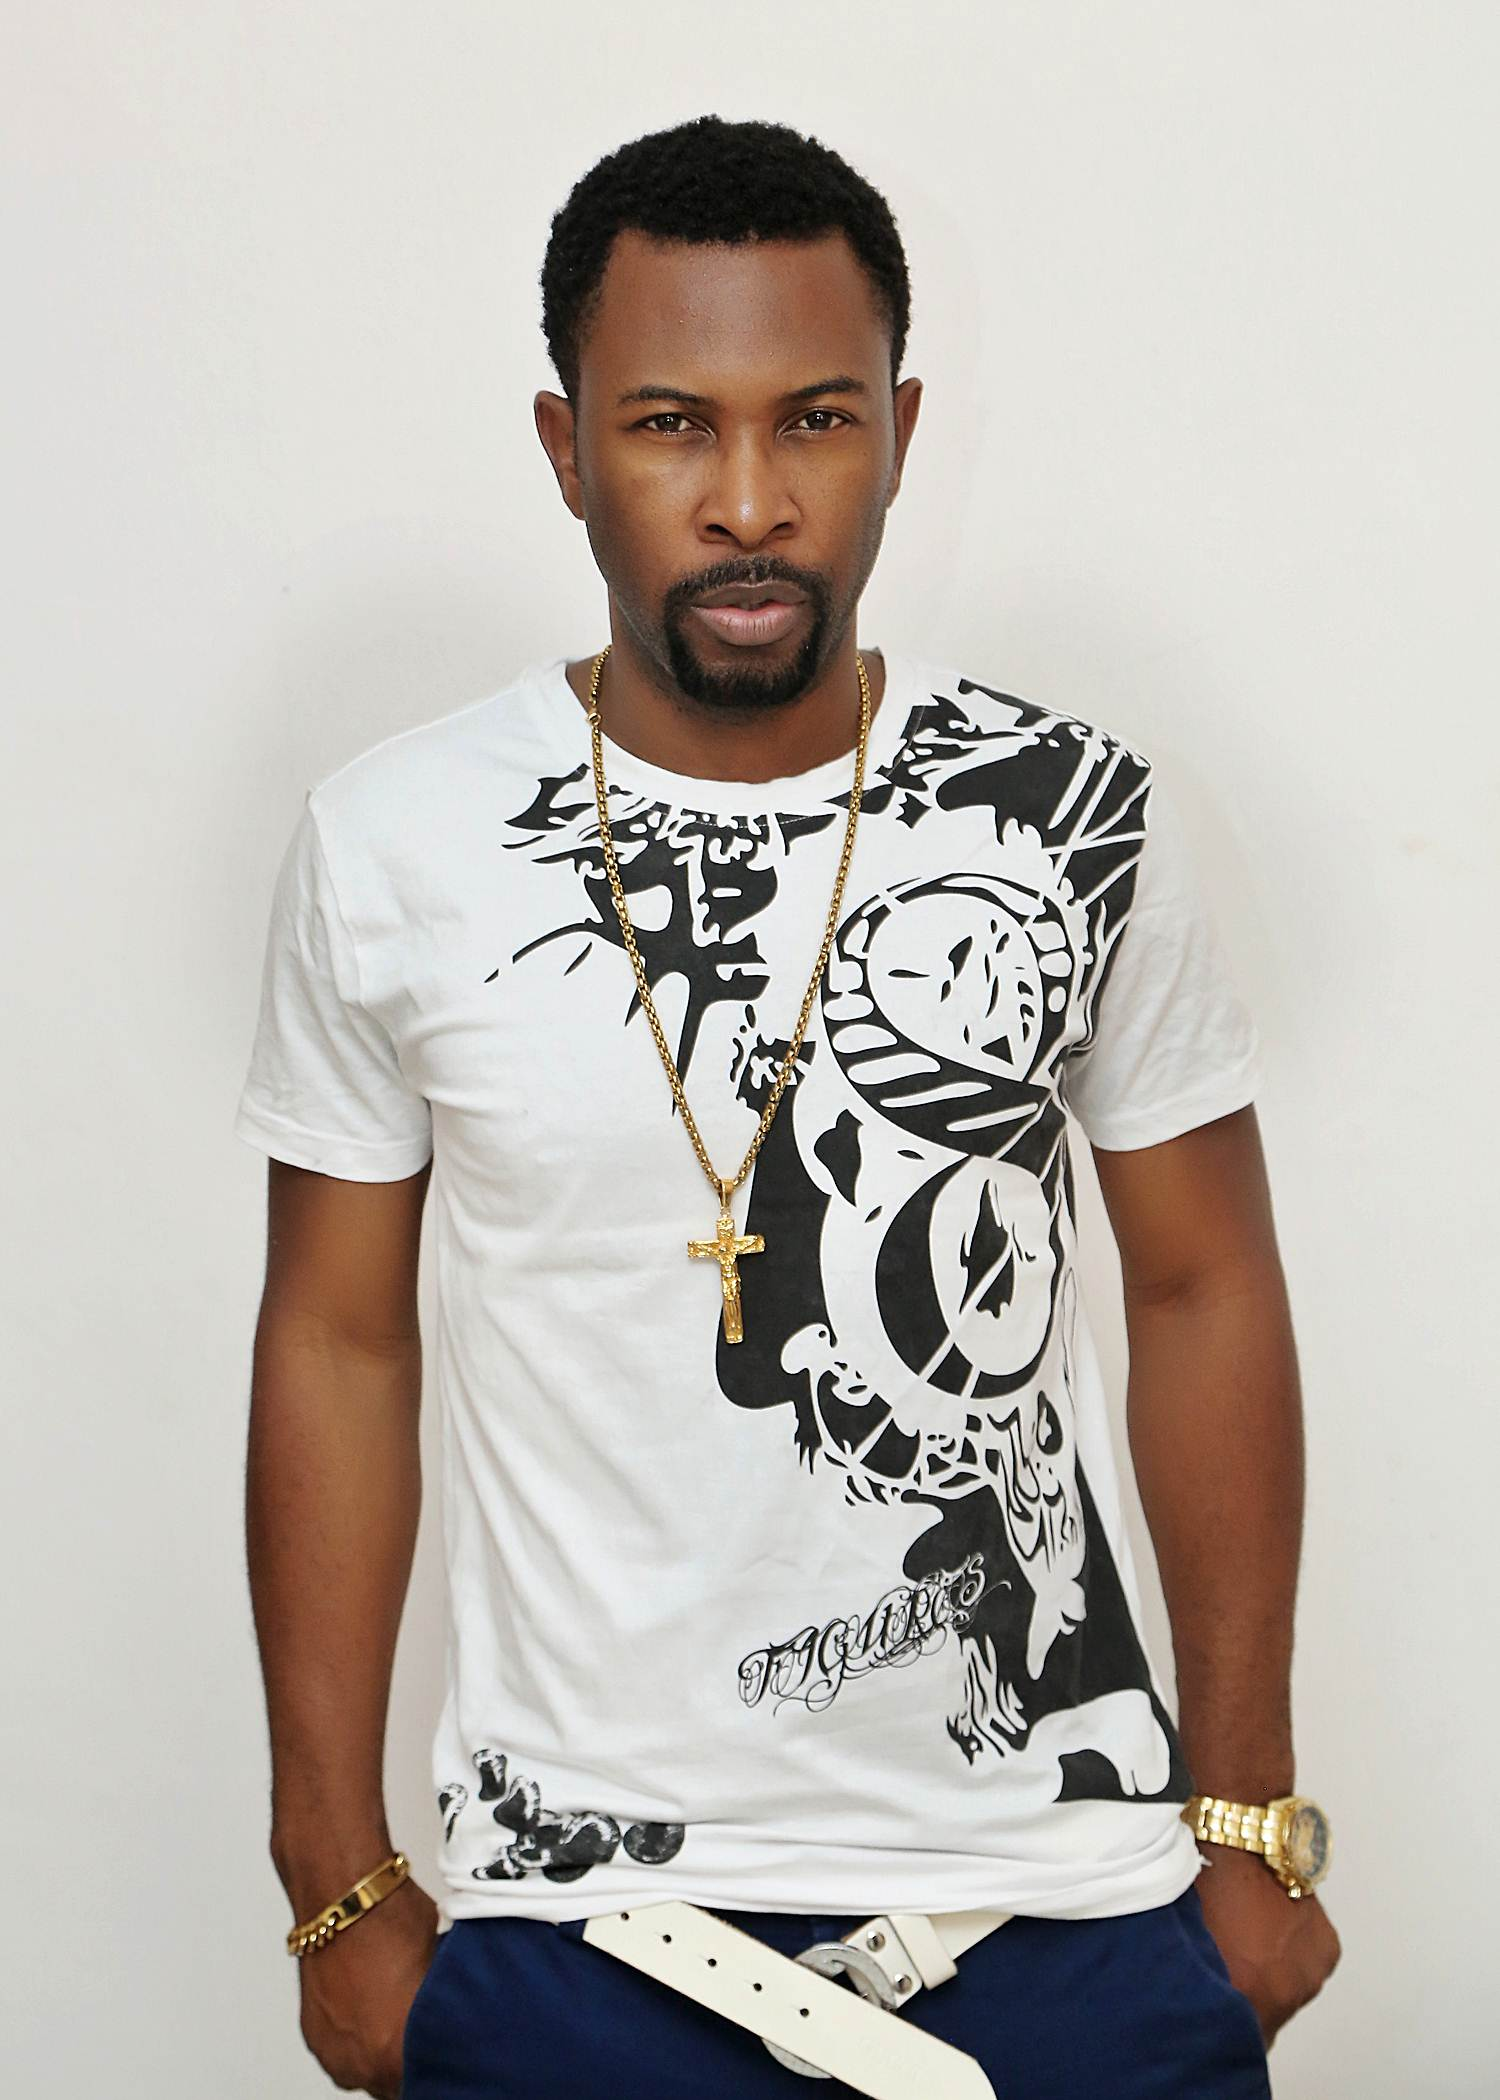 f2ad130f71fb8ce45404c6ca4b3d1889 - PMAN writes Nigeria High Commission in UK over attack on Ruggedman